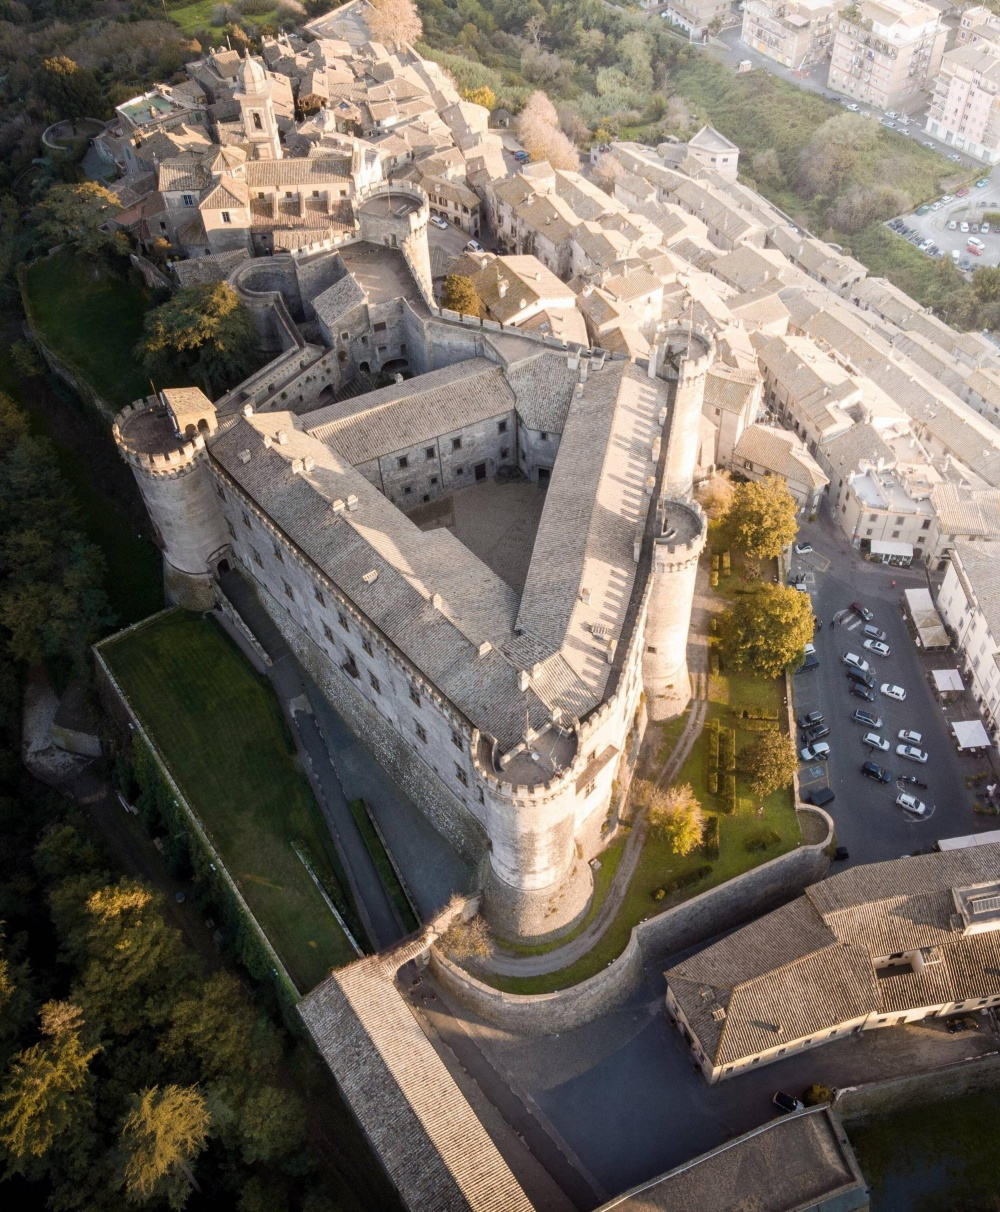 Areal view of the wedding castle in Rome